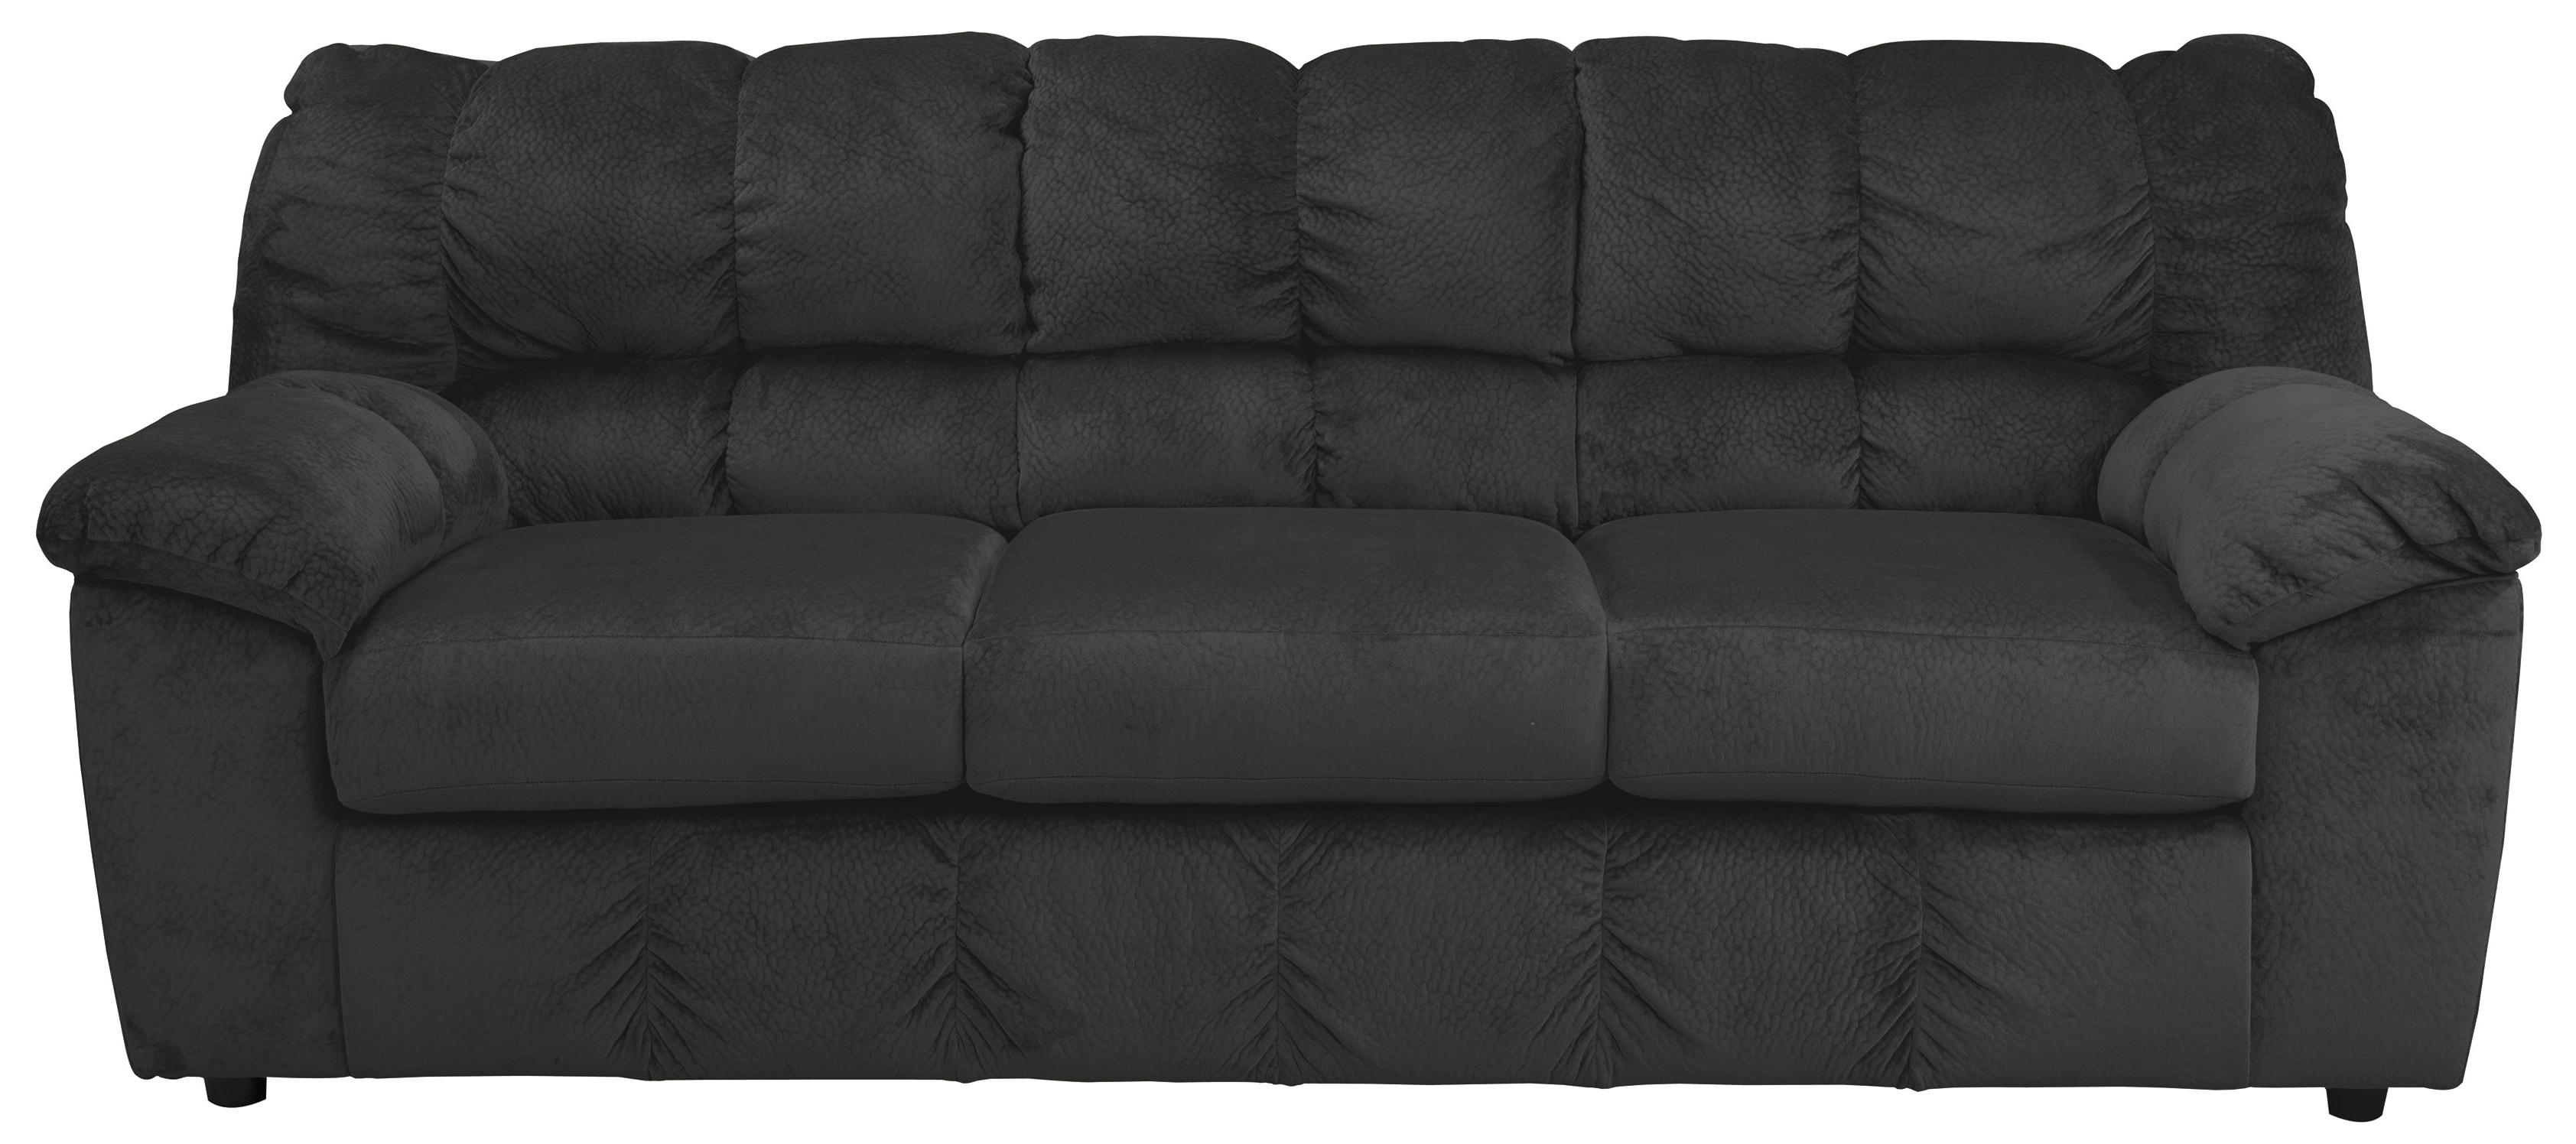 Signature Design by Ashley Julson - Ebony Sofa - Item Number: 2660038